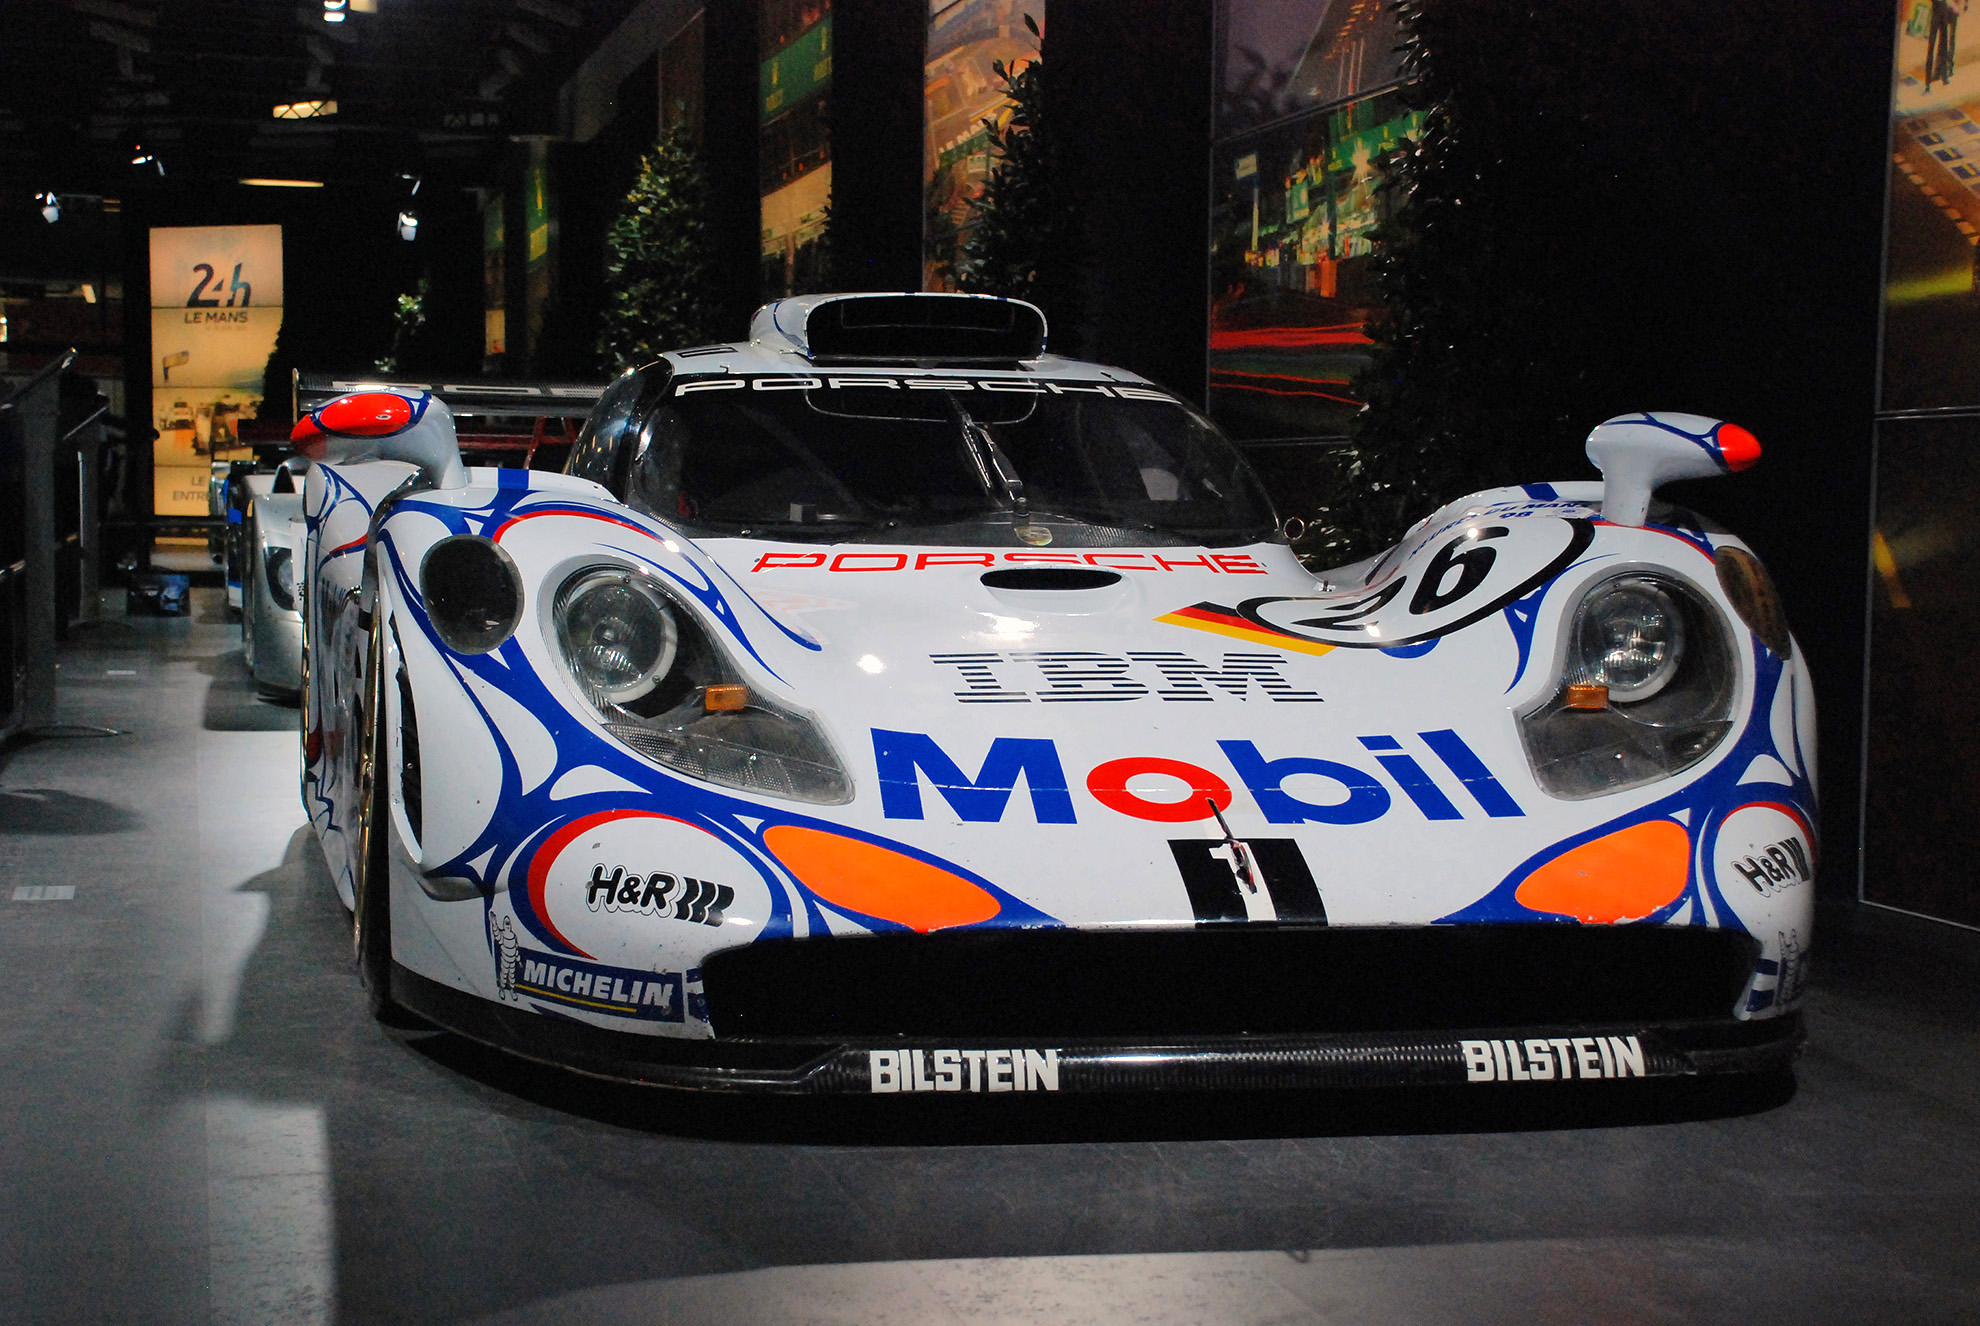 Porsche_911_GT1_n%C2%B026_%28winner_of_the_1998_24h_of_Le_Mans_race%29 Exciting Anson Racing Porsche 911 Gt1 Cars Trend